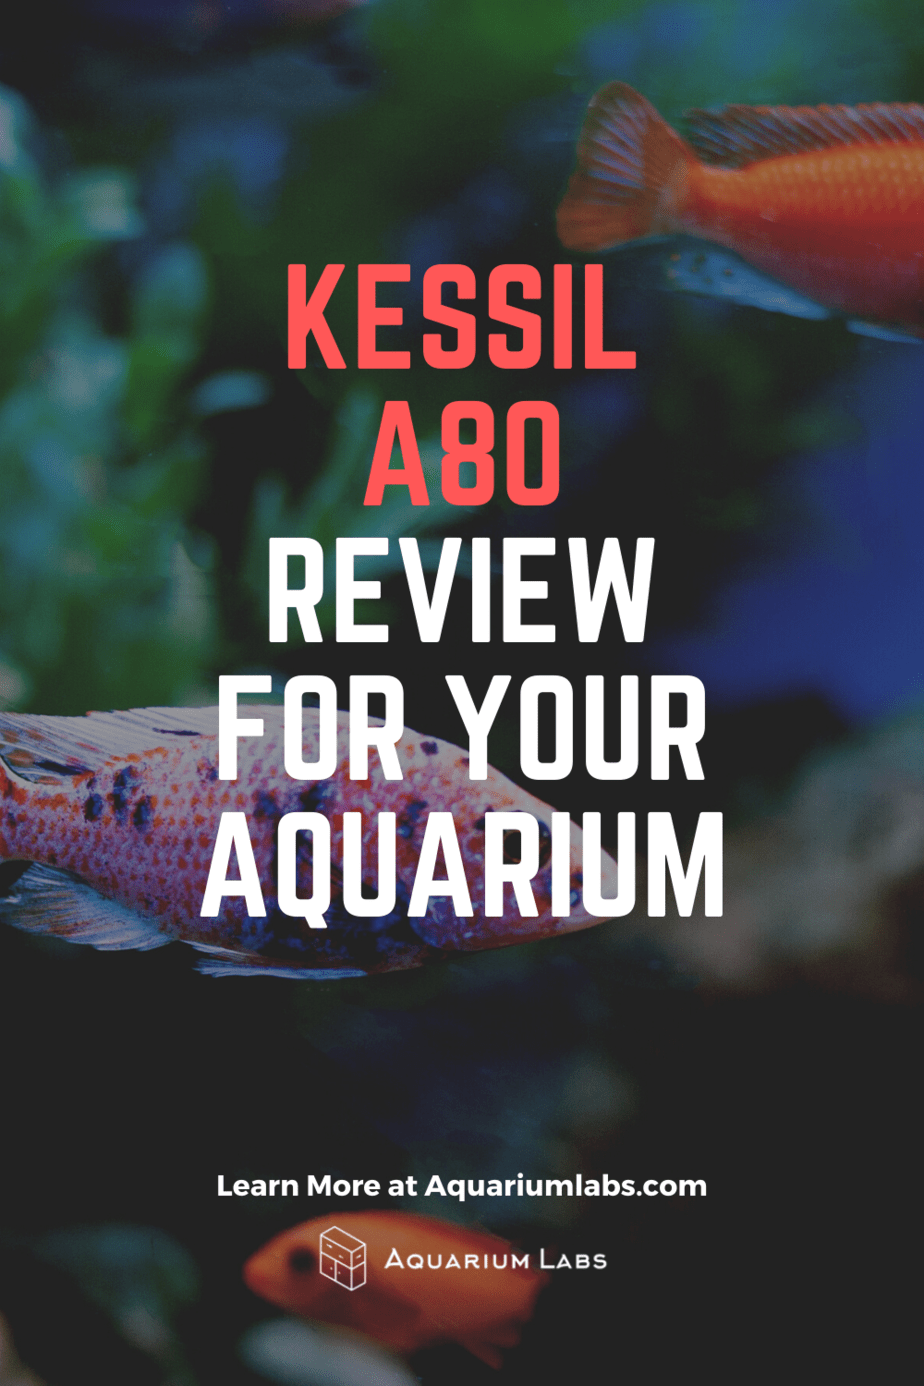 kessil a80 review